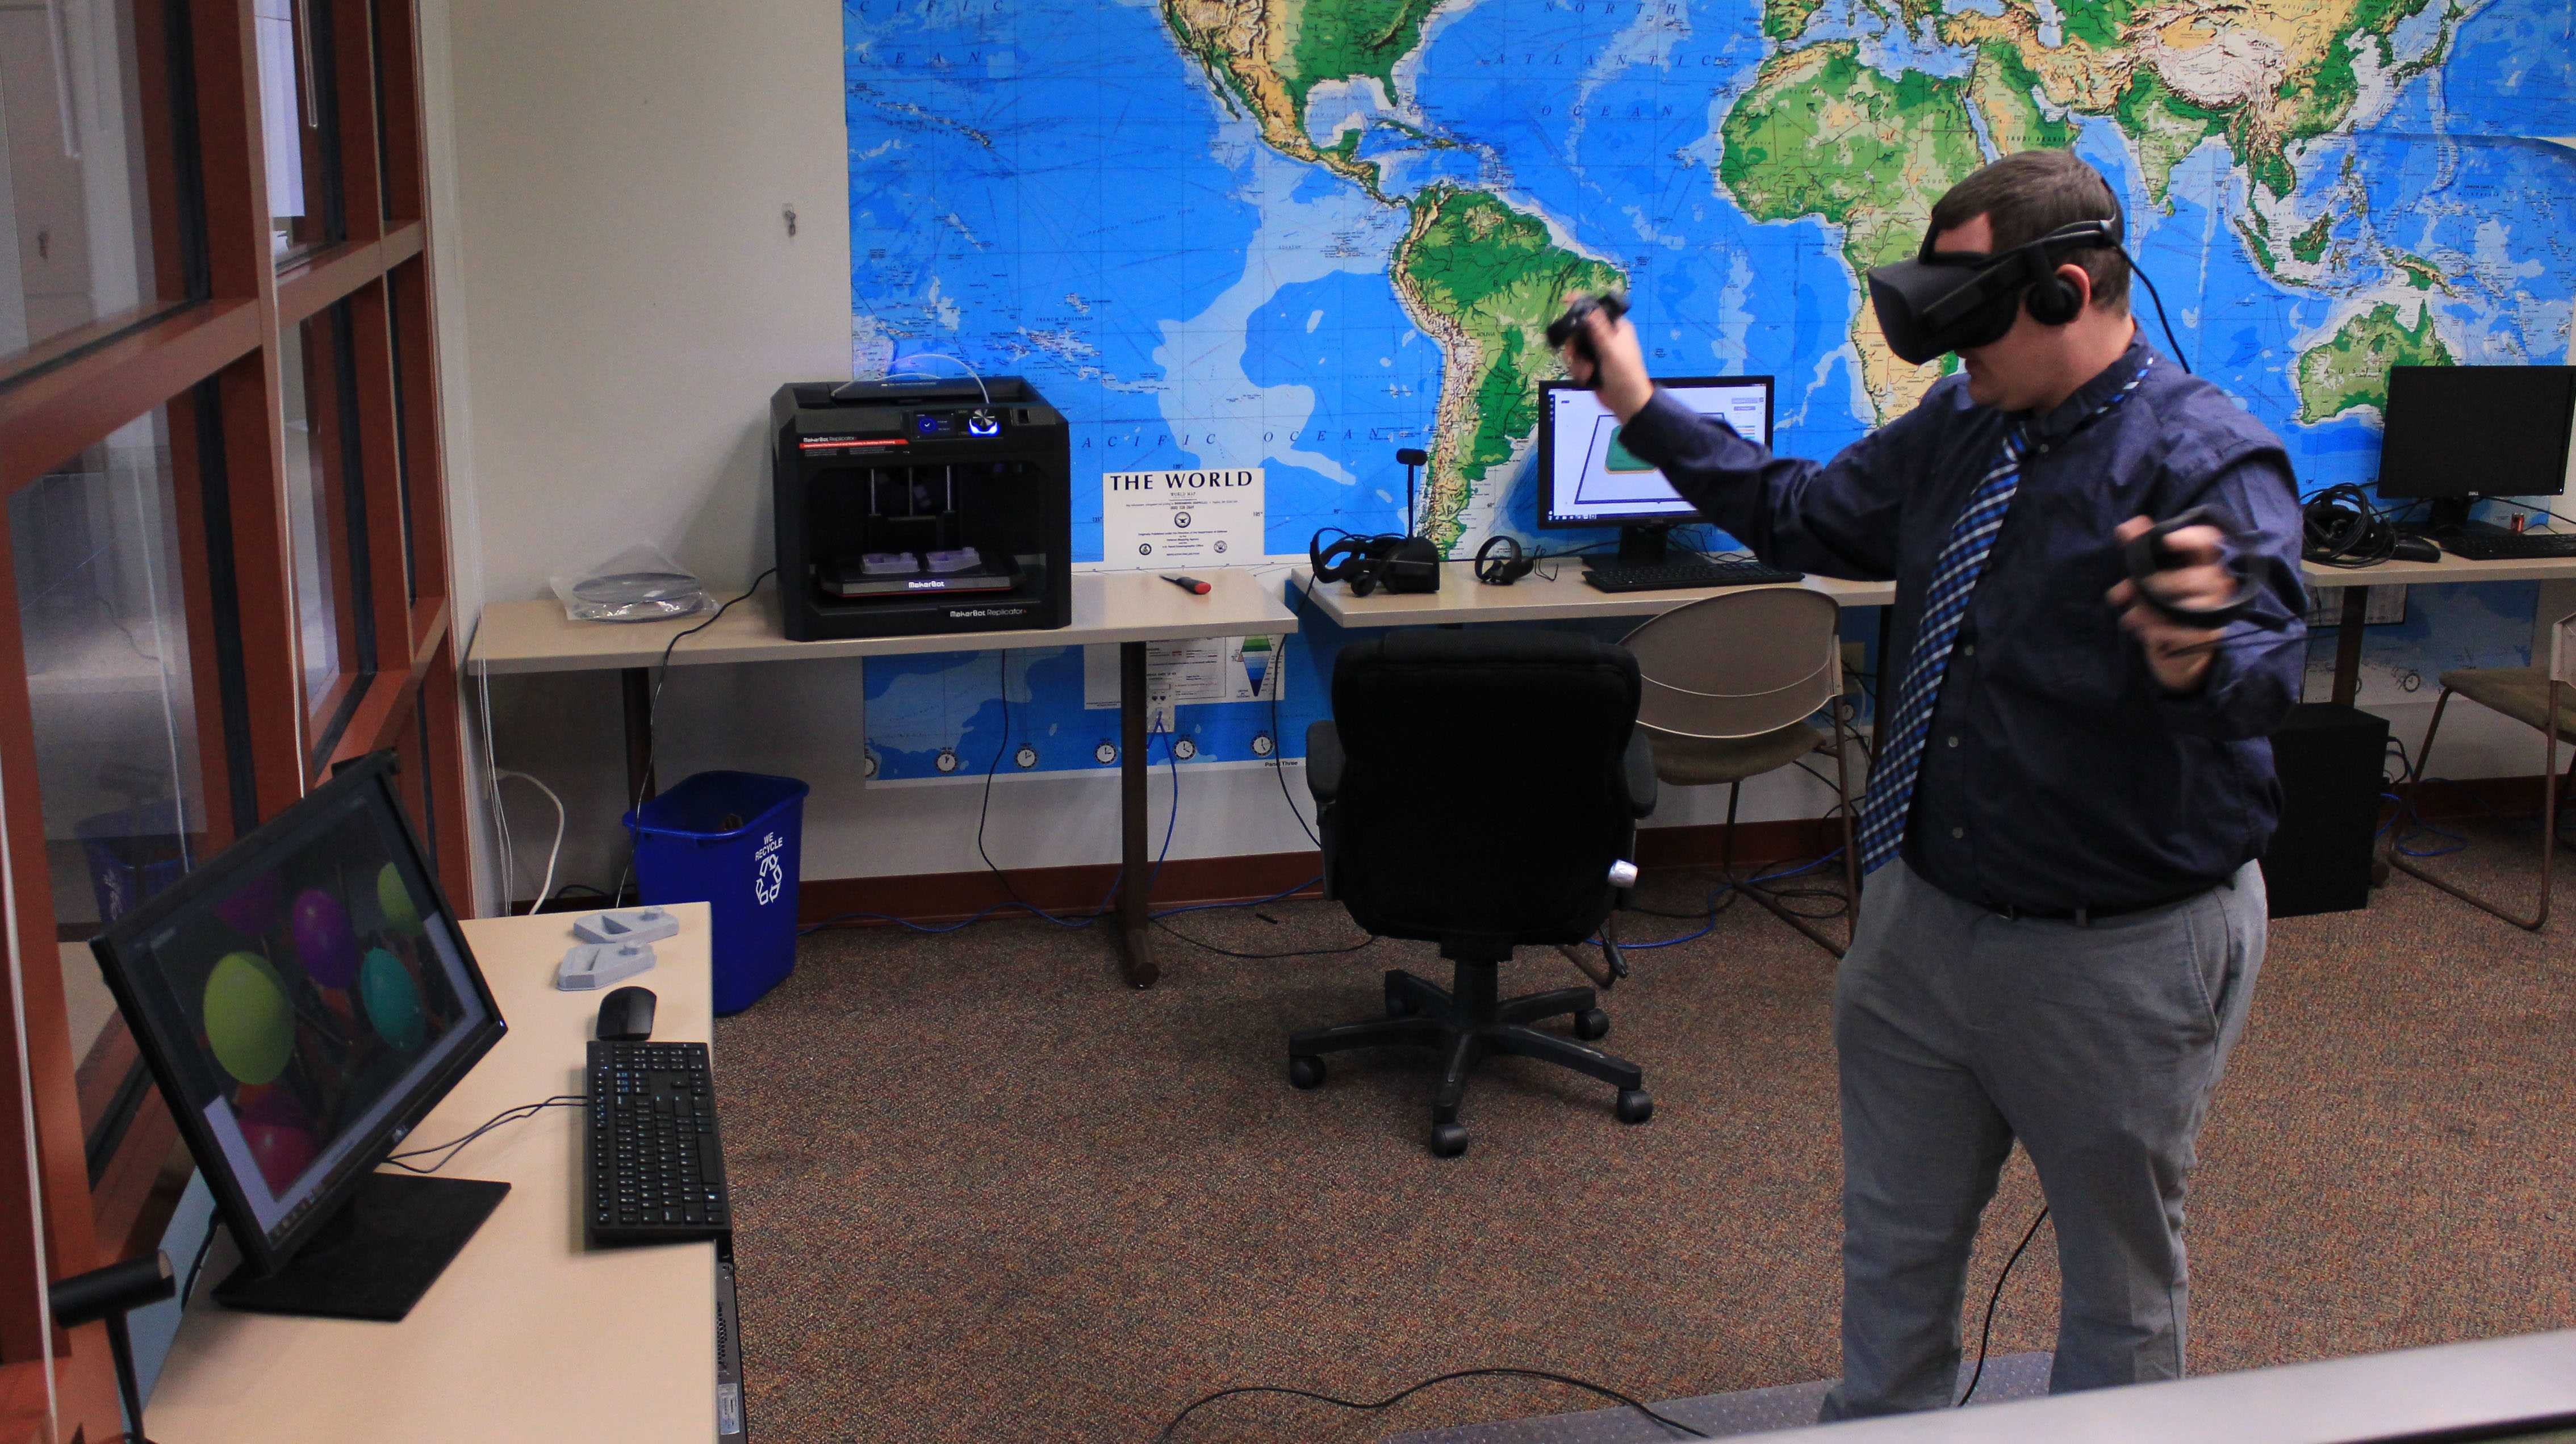 Adjunct professor Chris Pusczak tests the new equipment in the test virtual-reality studio in Spellmann 4085.  Photo by Lindsey Fiala.